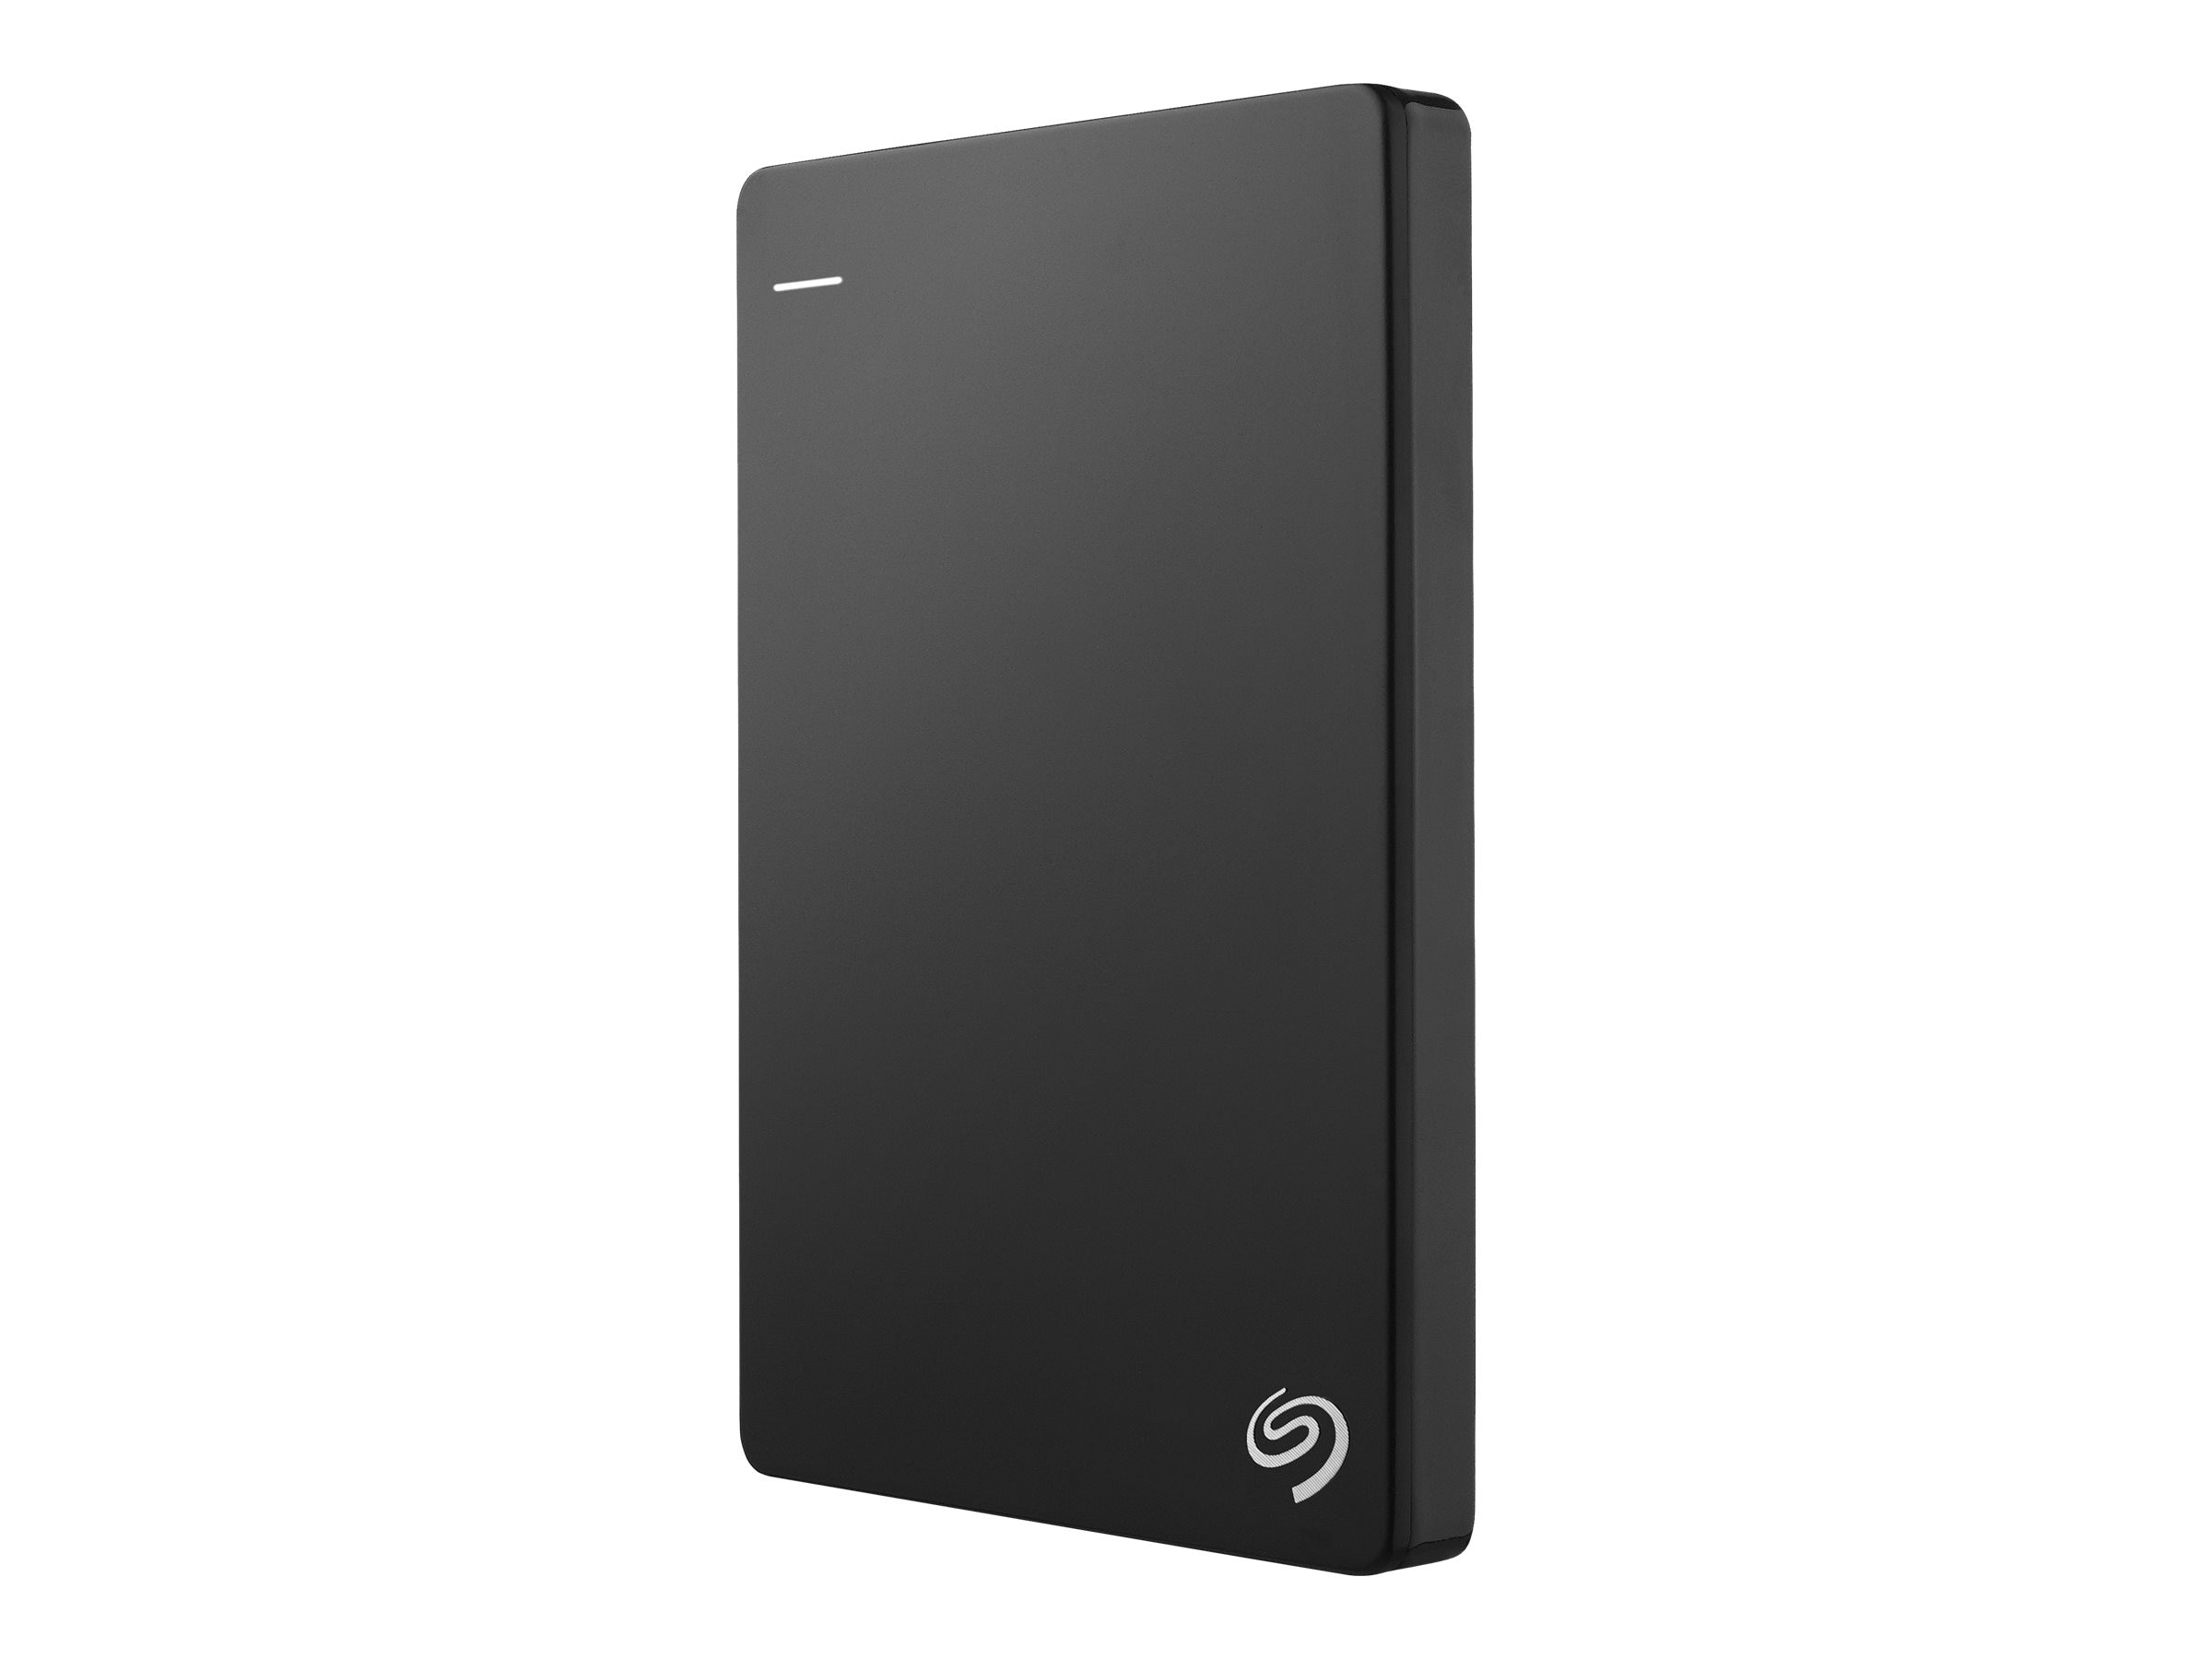 Seagate 1TB Backup Plus USB 3.0 Slim Portable Hard Drive - Black, STDR1000100, 16573911, Hard Drives - External